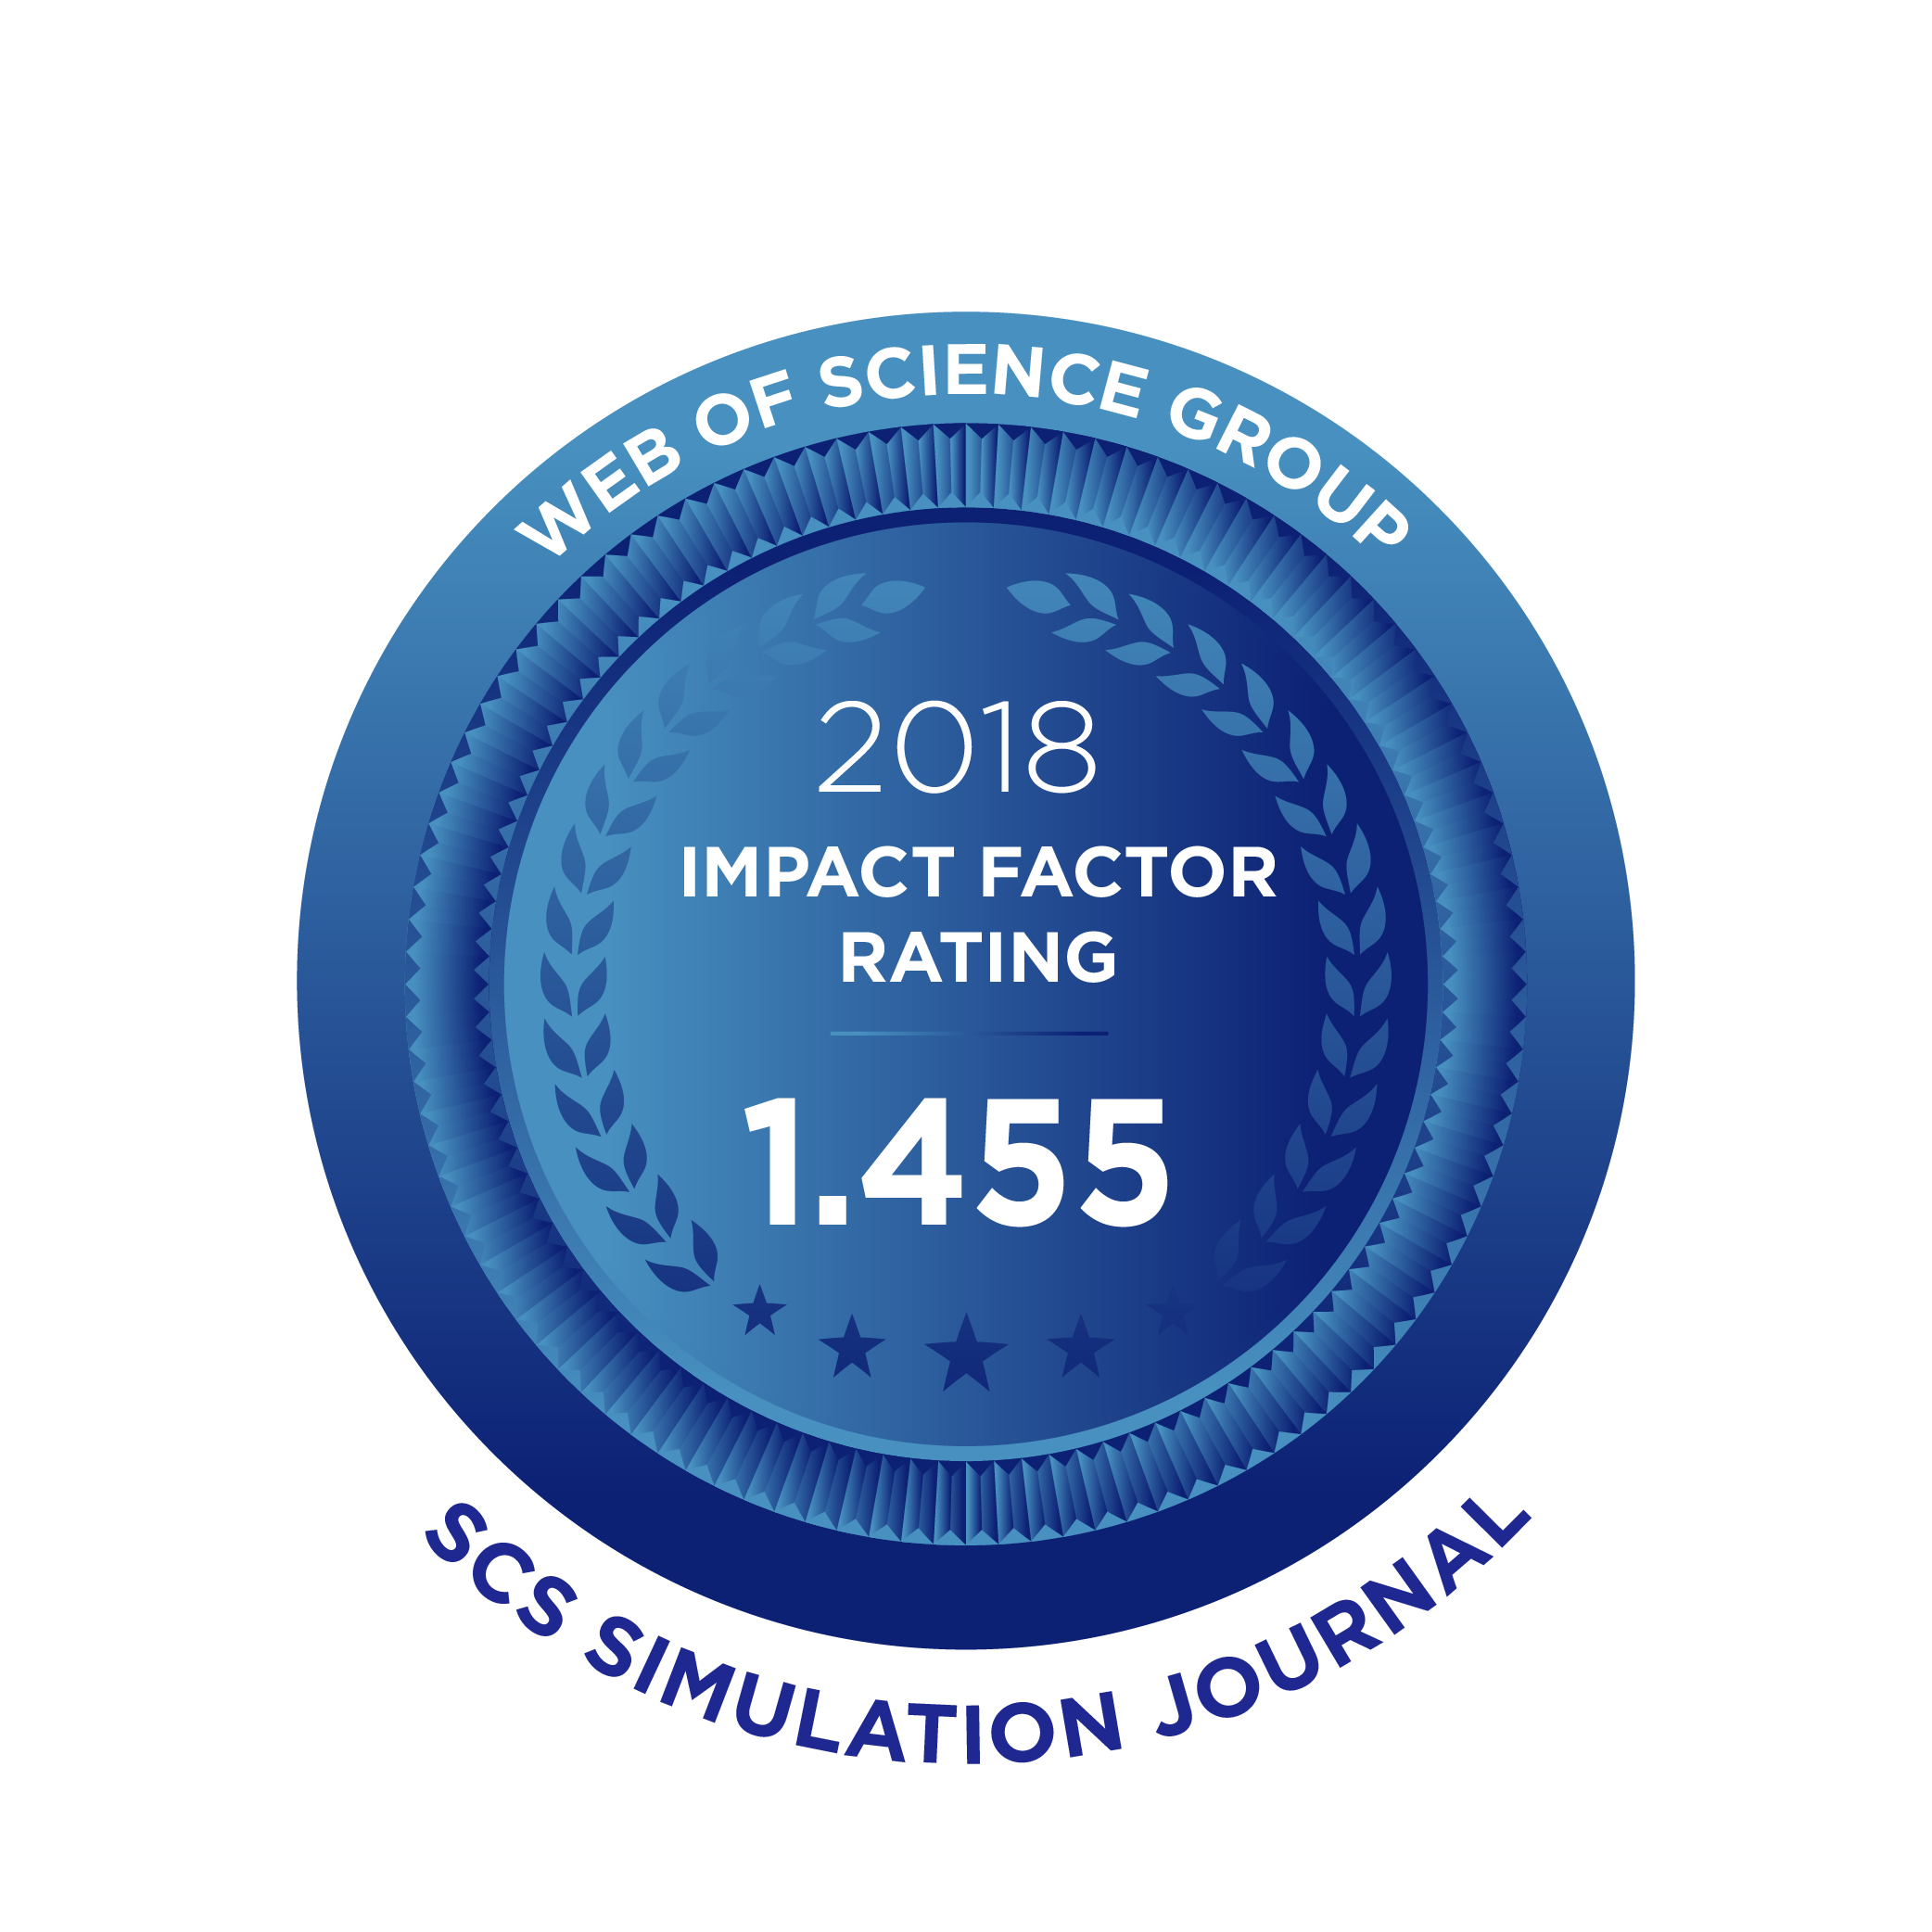 SC19310_CustomizedBadge_2018ImpactFactorRating_v3_blue